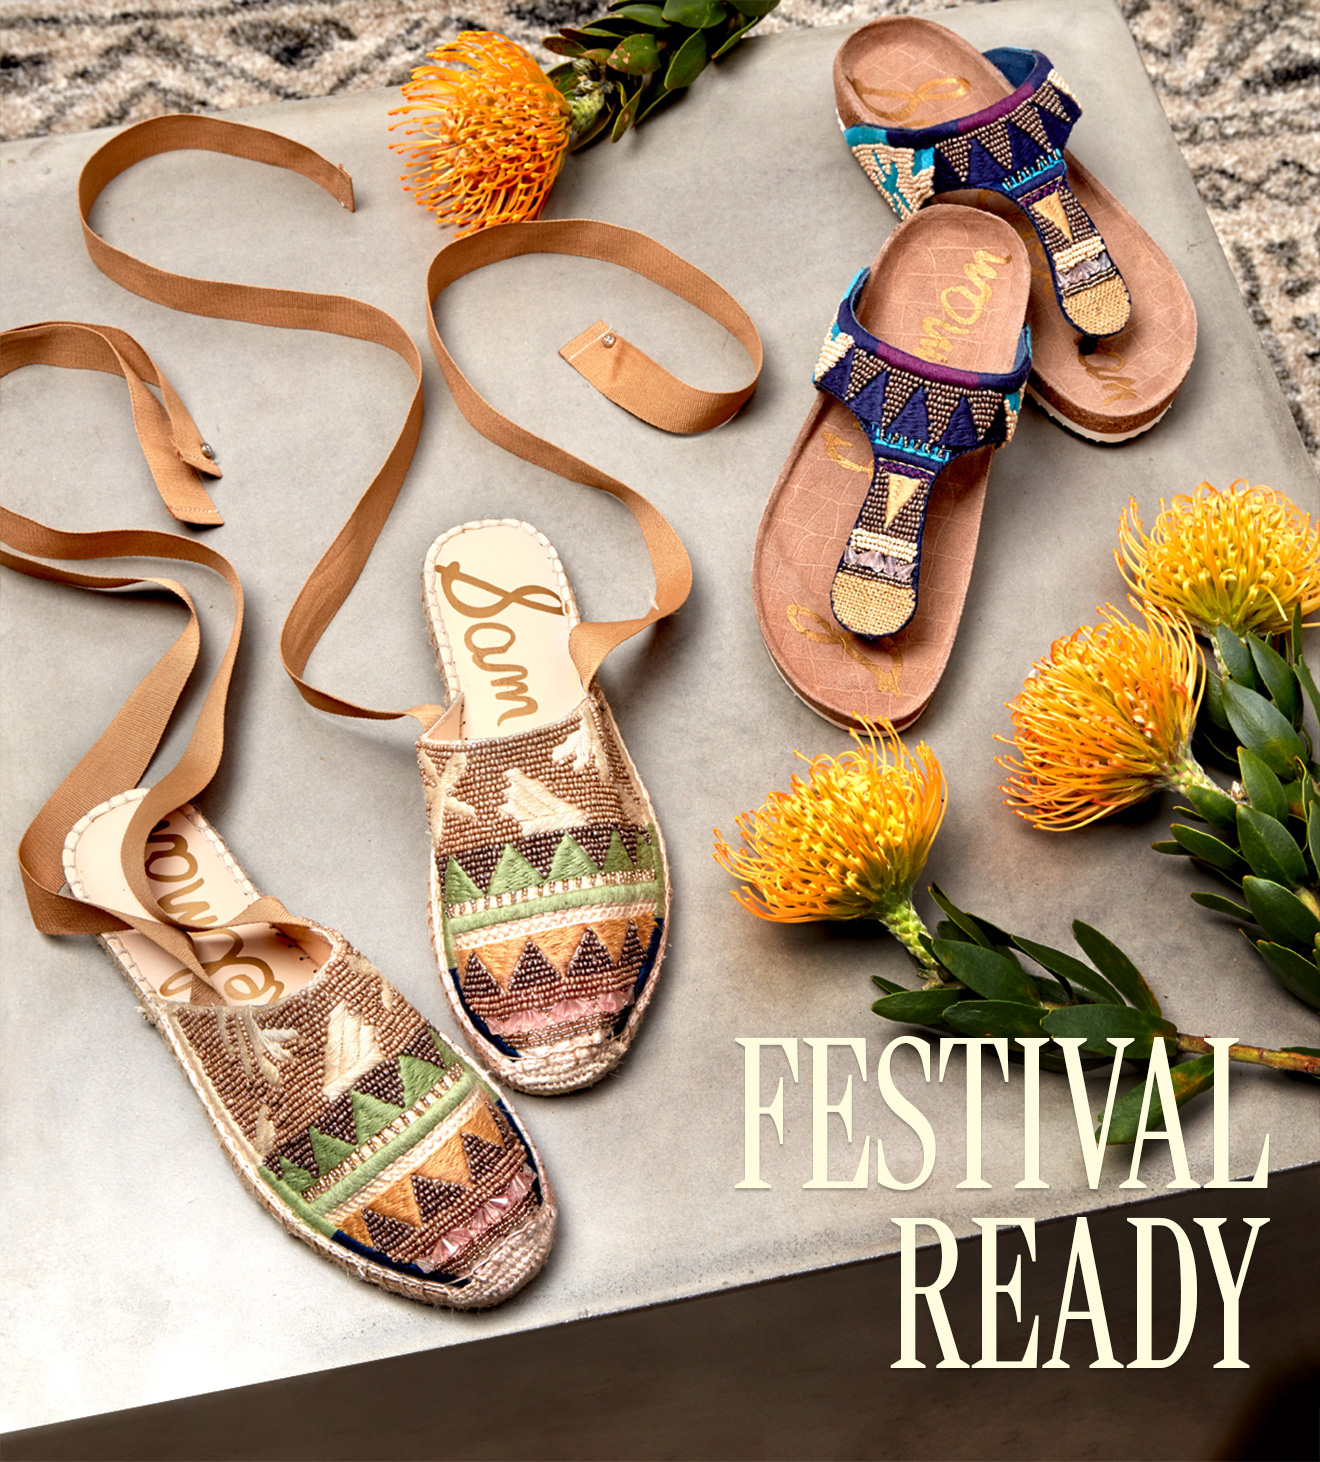 863ea4a1c Sam Edelman Shoes  Festival Chic  Beaded Espadrilles and Sandals ...